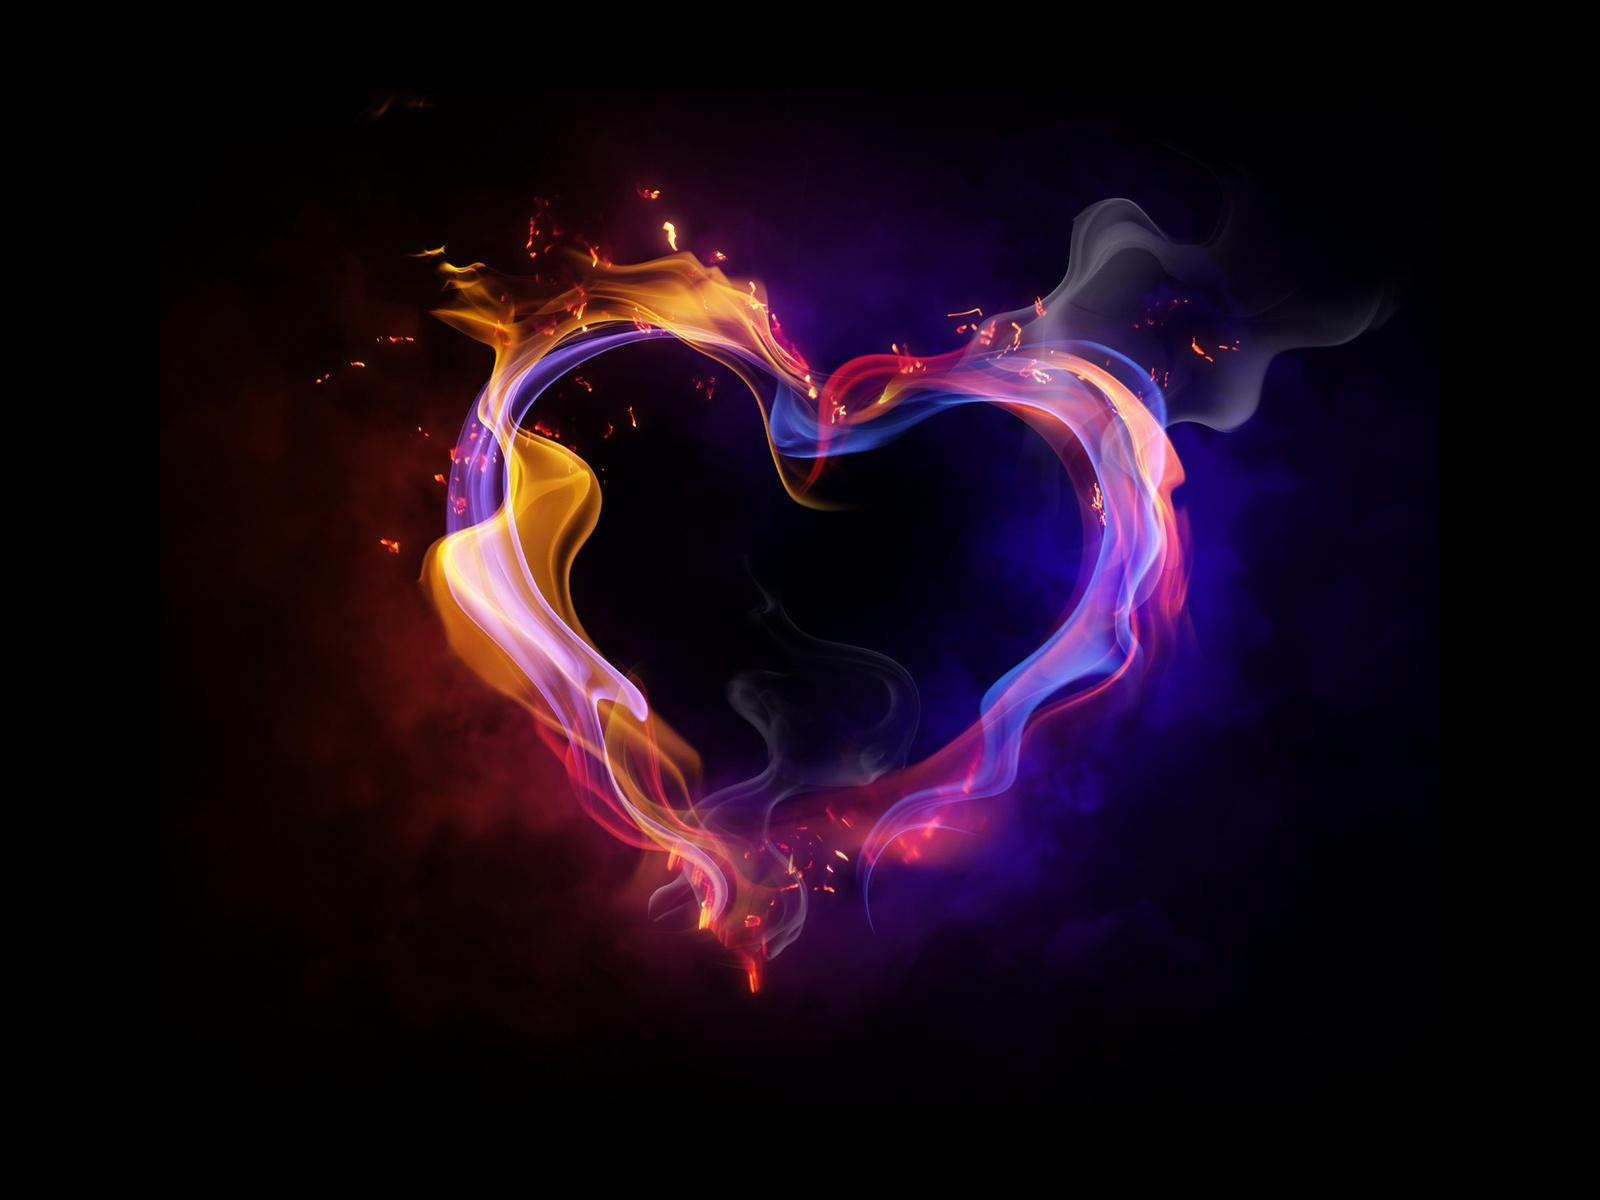 Burning Love Hd Wallpapers: I Love ♥ You Heart HD Wallpapers - I ♥ You Images